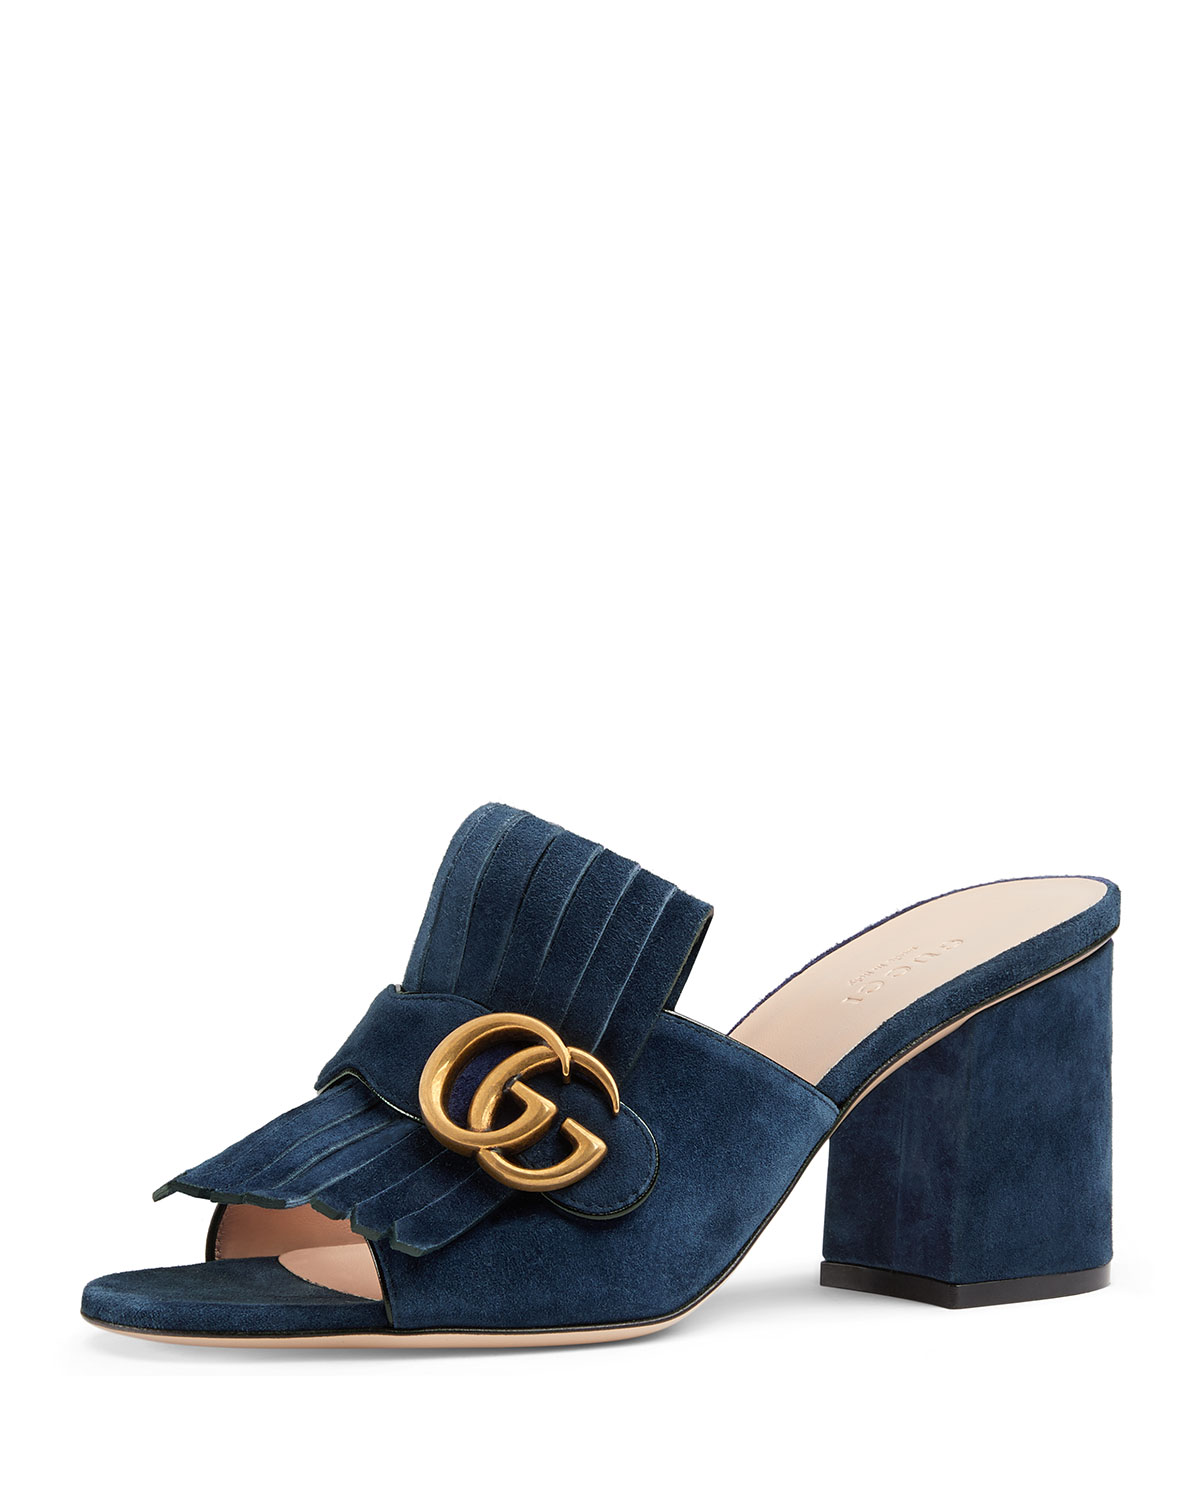 c10a9d99d55 Gucci Suede Mid-Heel Slide With Double G In Blue